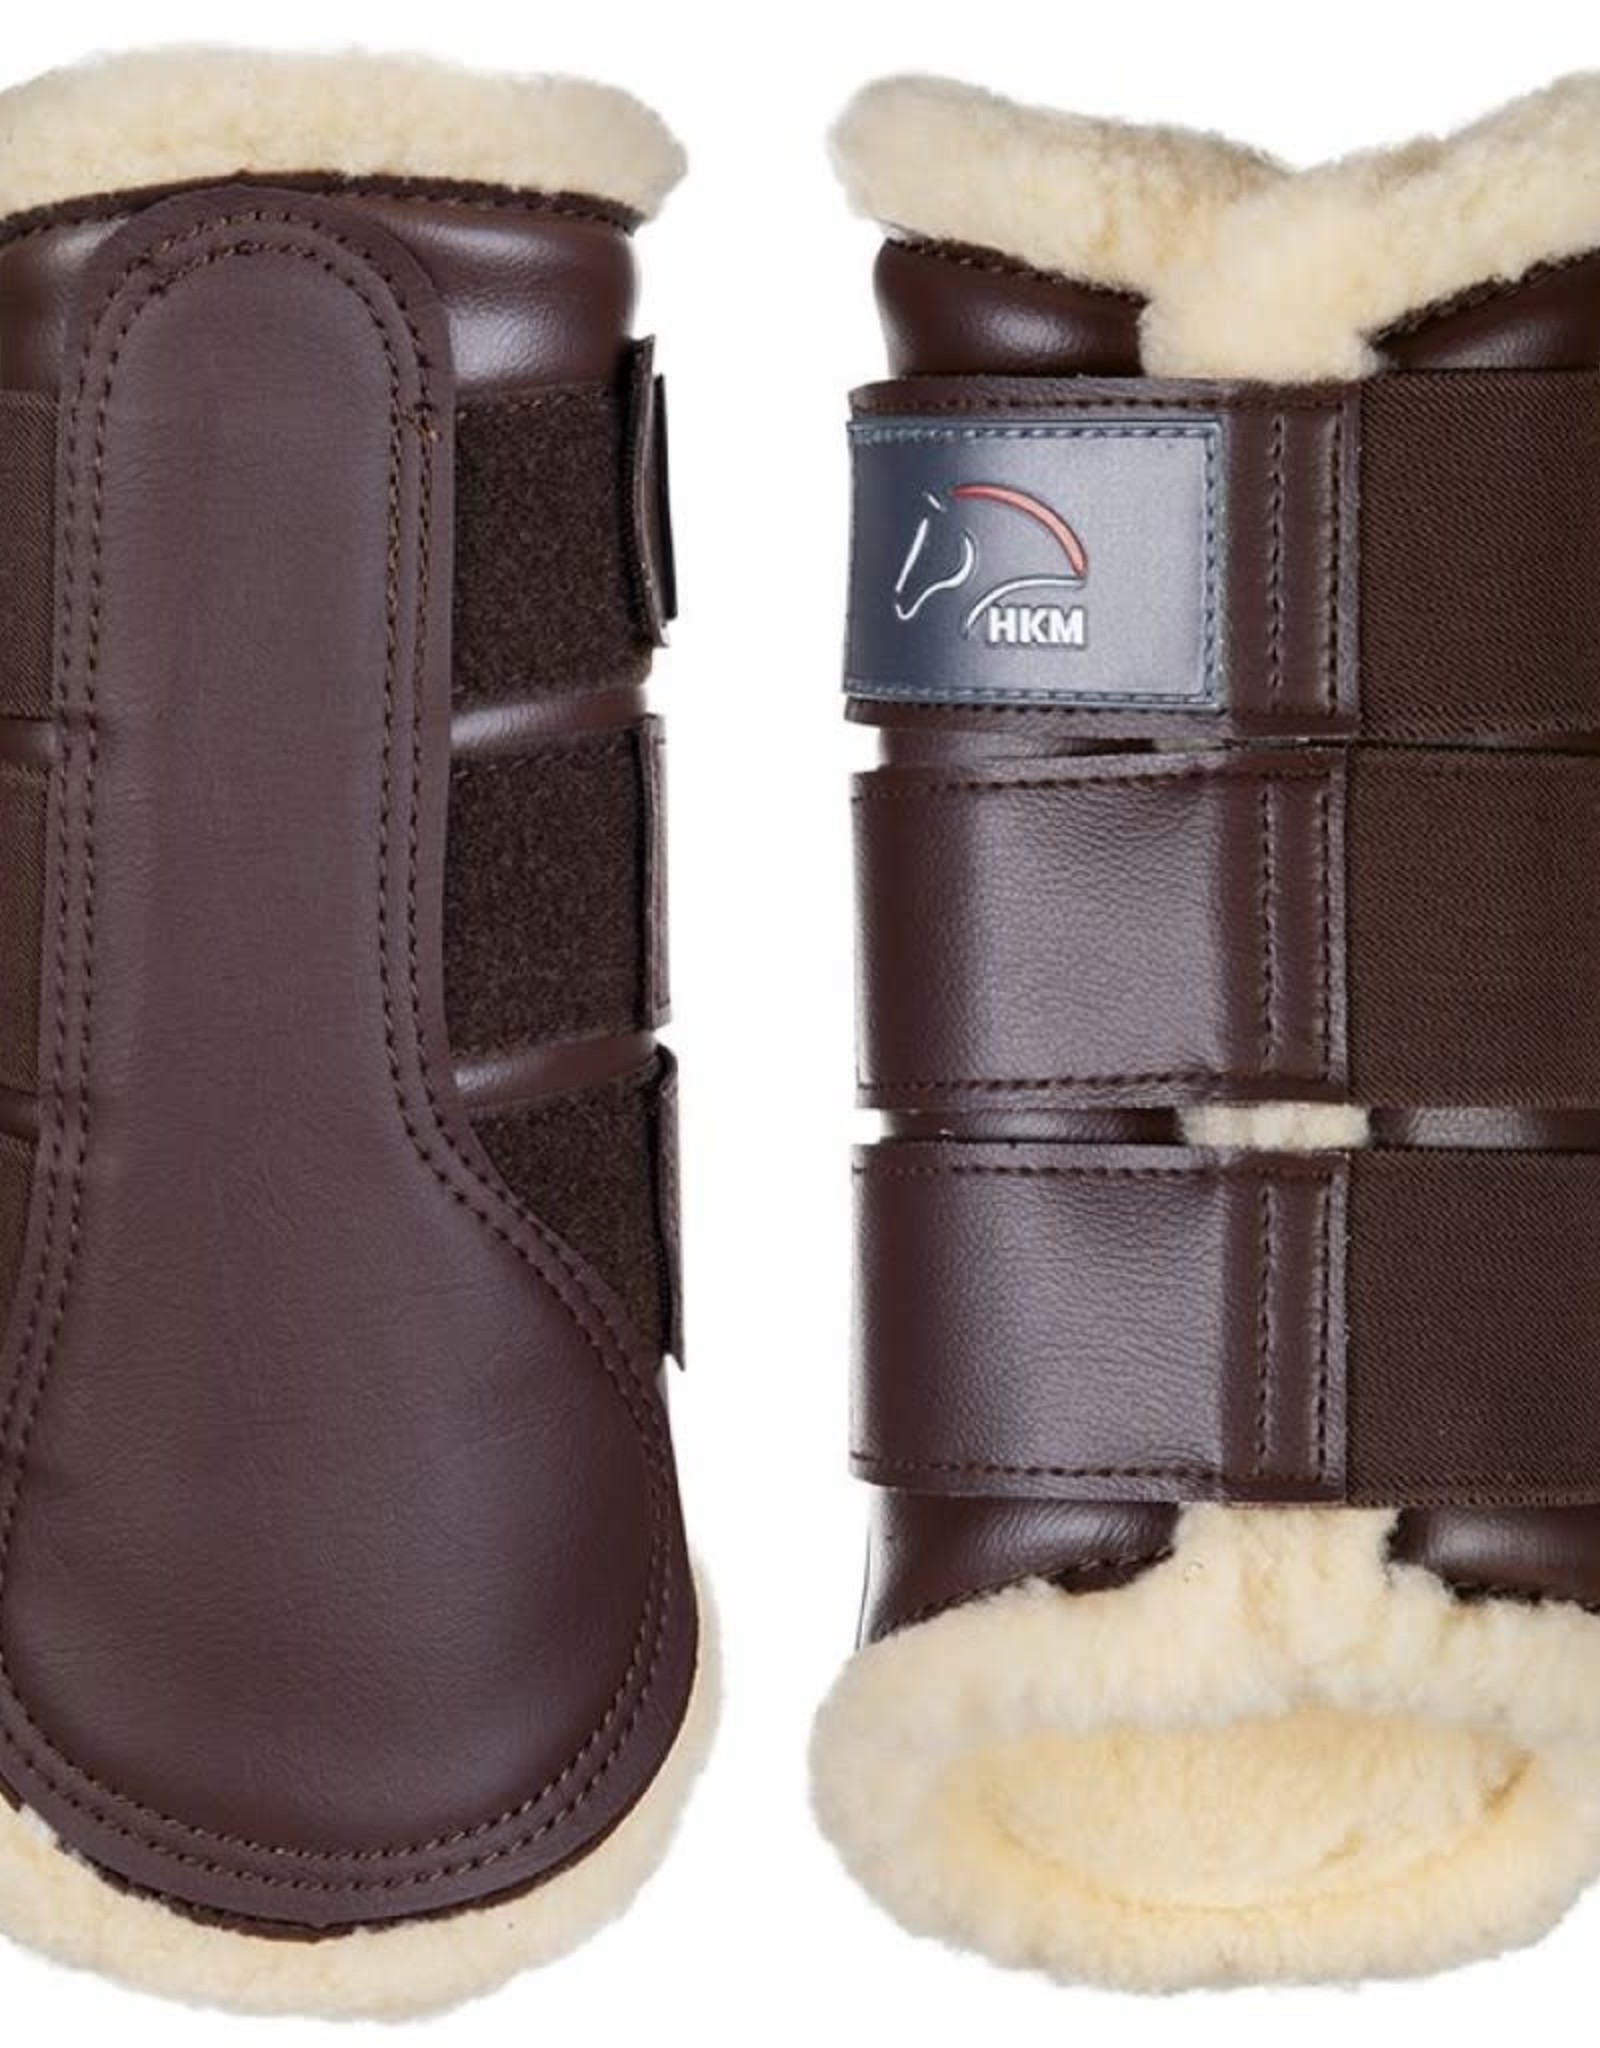 HKM Protection boots